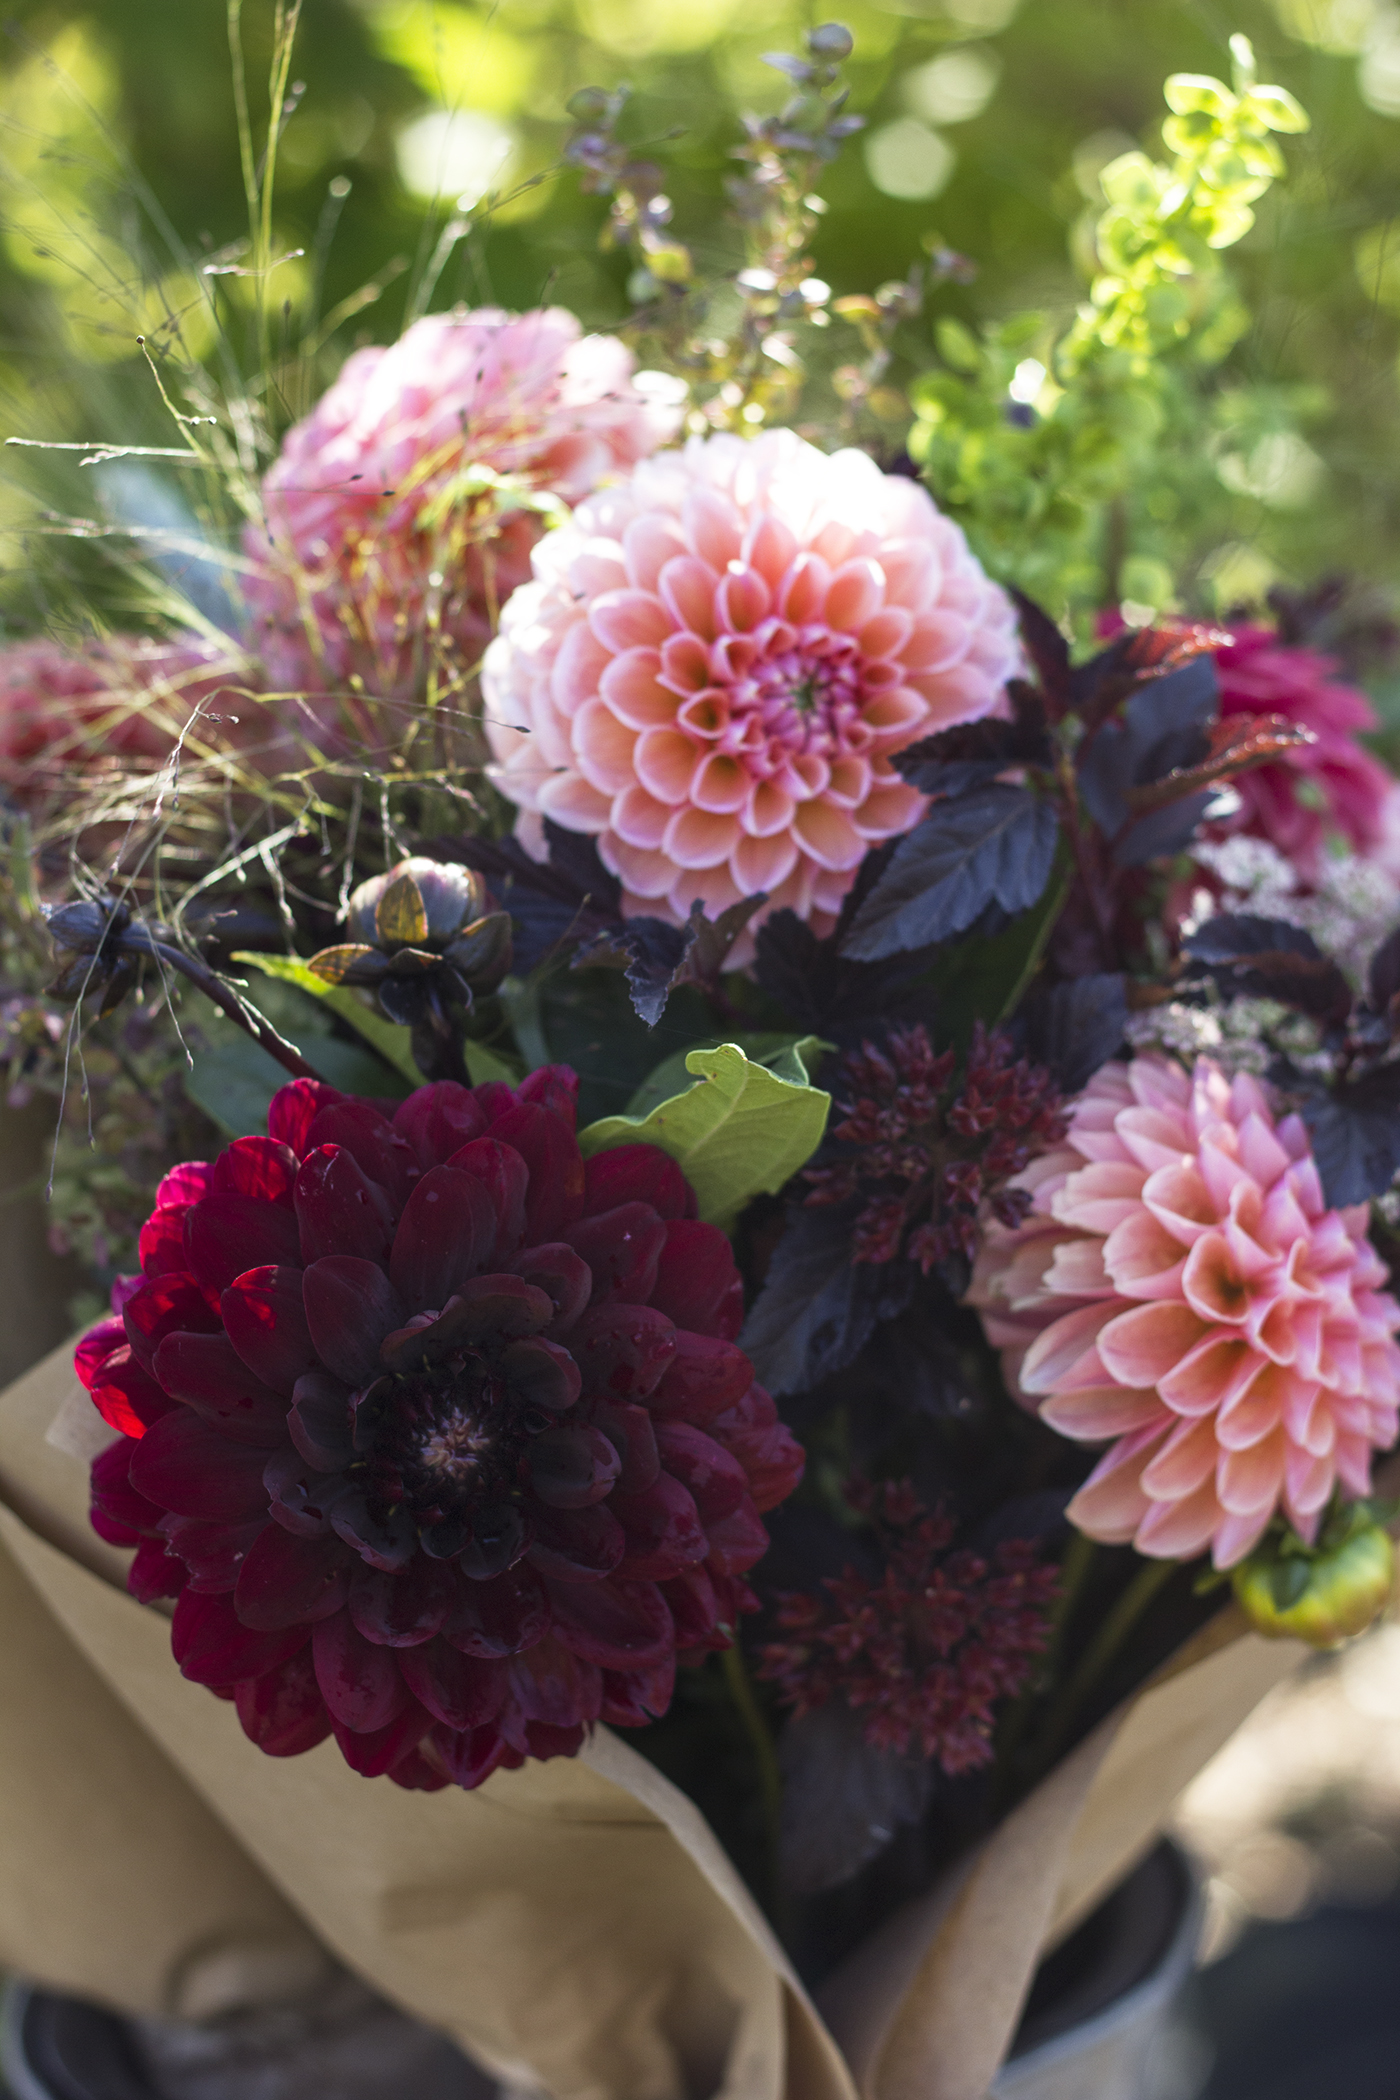 reduced_ss_dahlia_bouquet_for_sale_Karma_chocolate_lindas_baby_cress_frosted_explosion.jpg